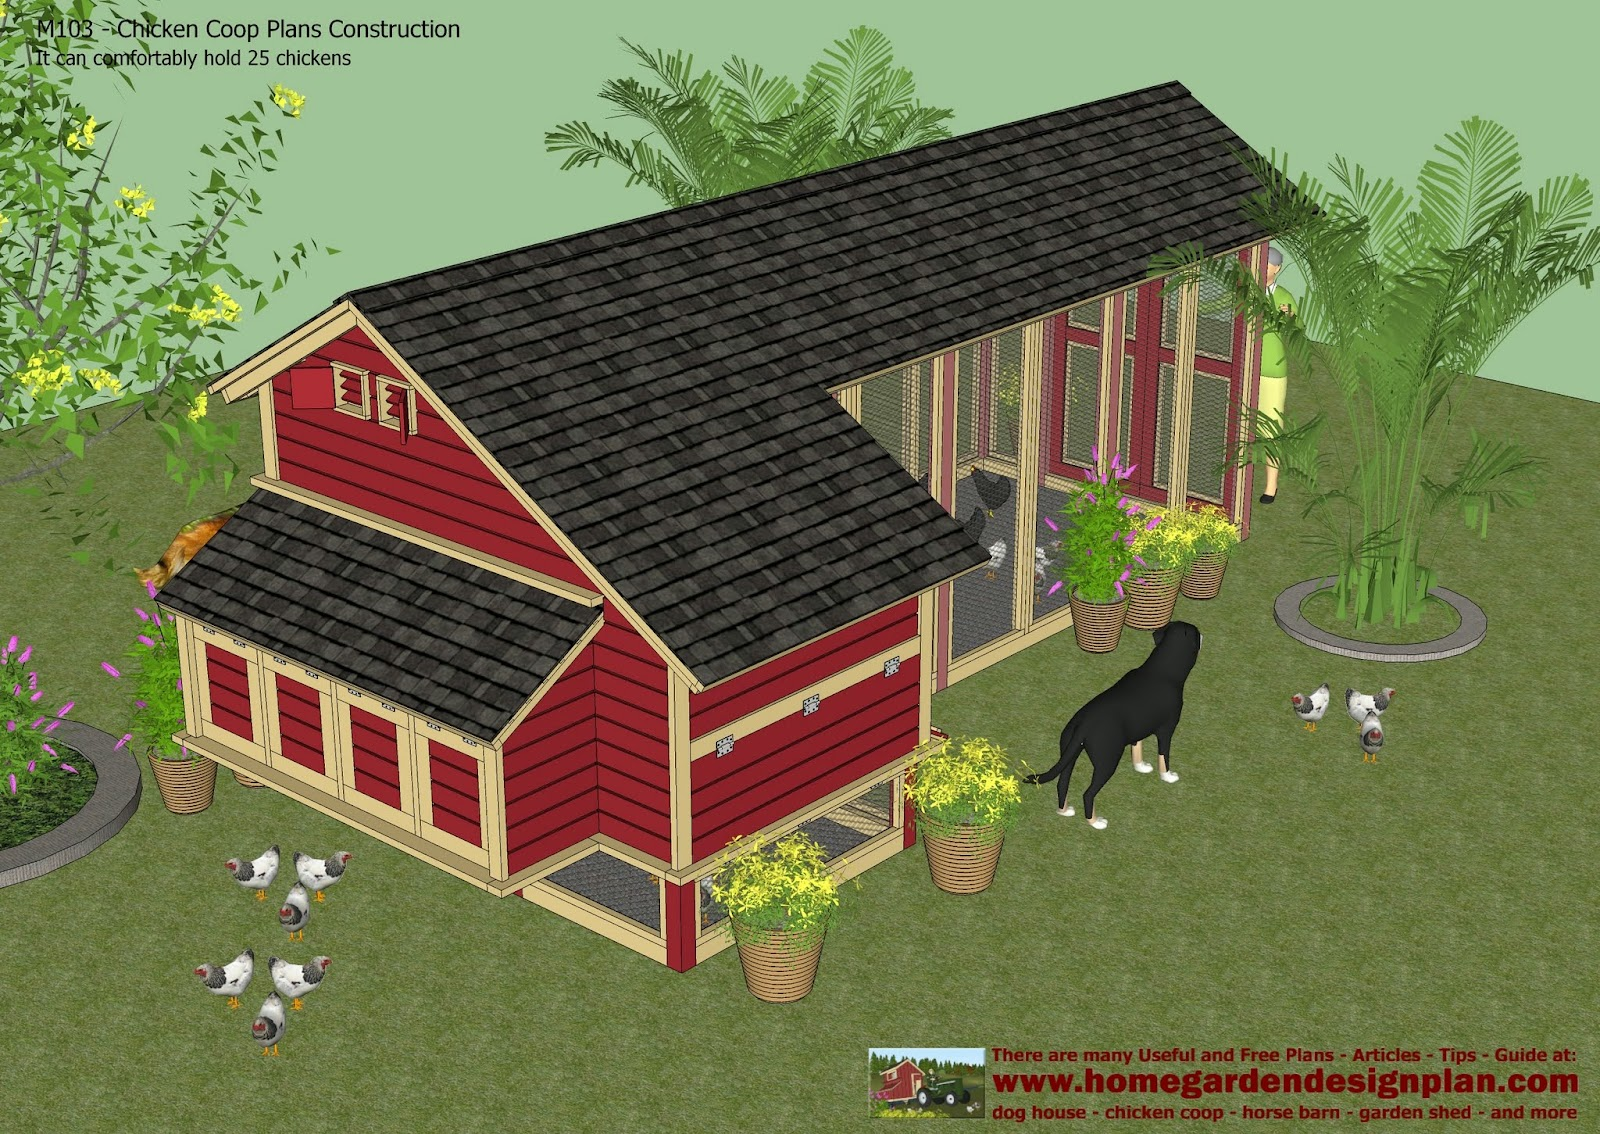 Chcken coop 5 x 6 chicken coop plans for Chicken coop size for 6 chickens